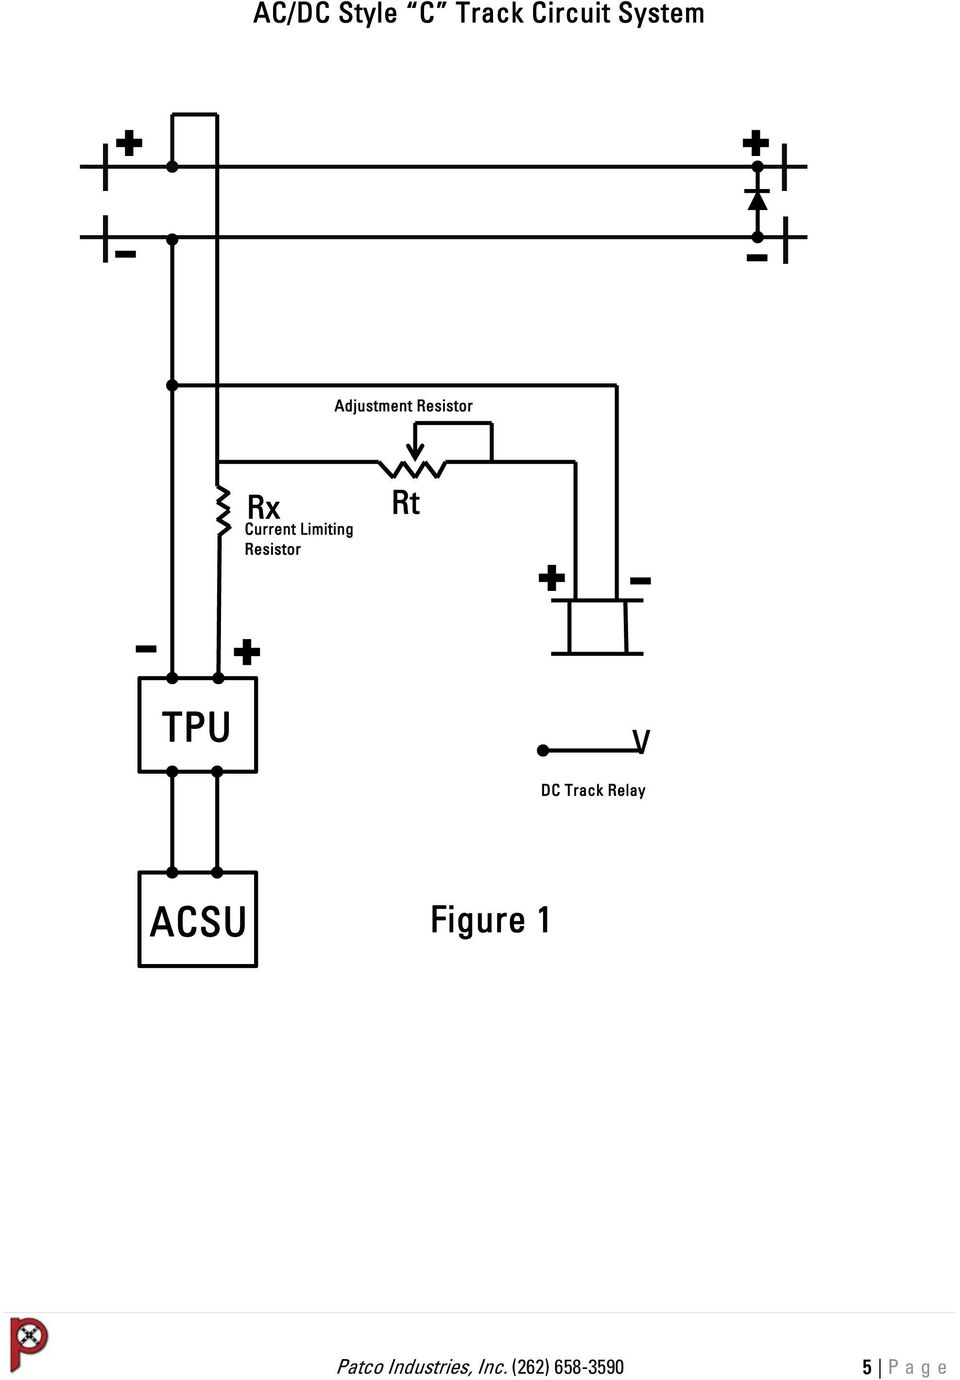 Ac Dc Track Circuit System Os And Fouling Applications Pdf Circuits Current Limiting Resistor Rt Tpu 6 Style C